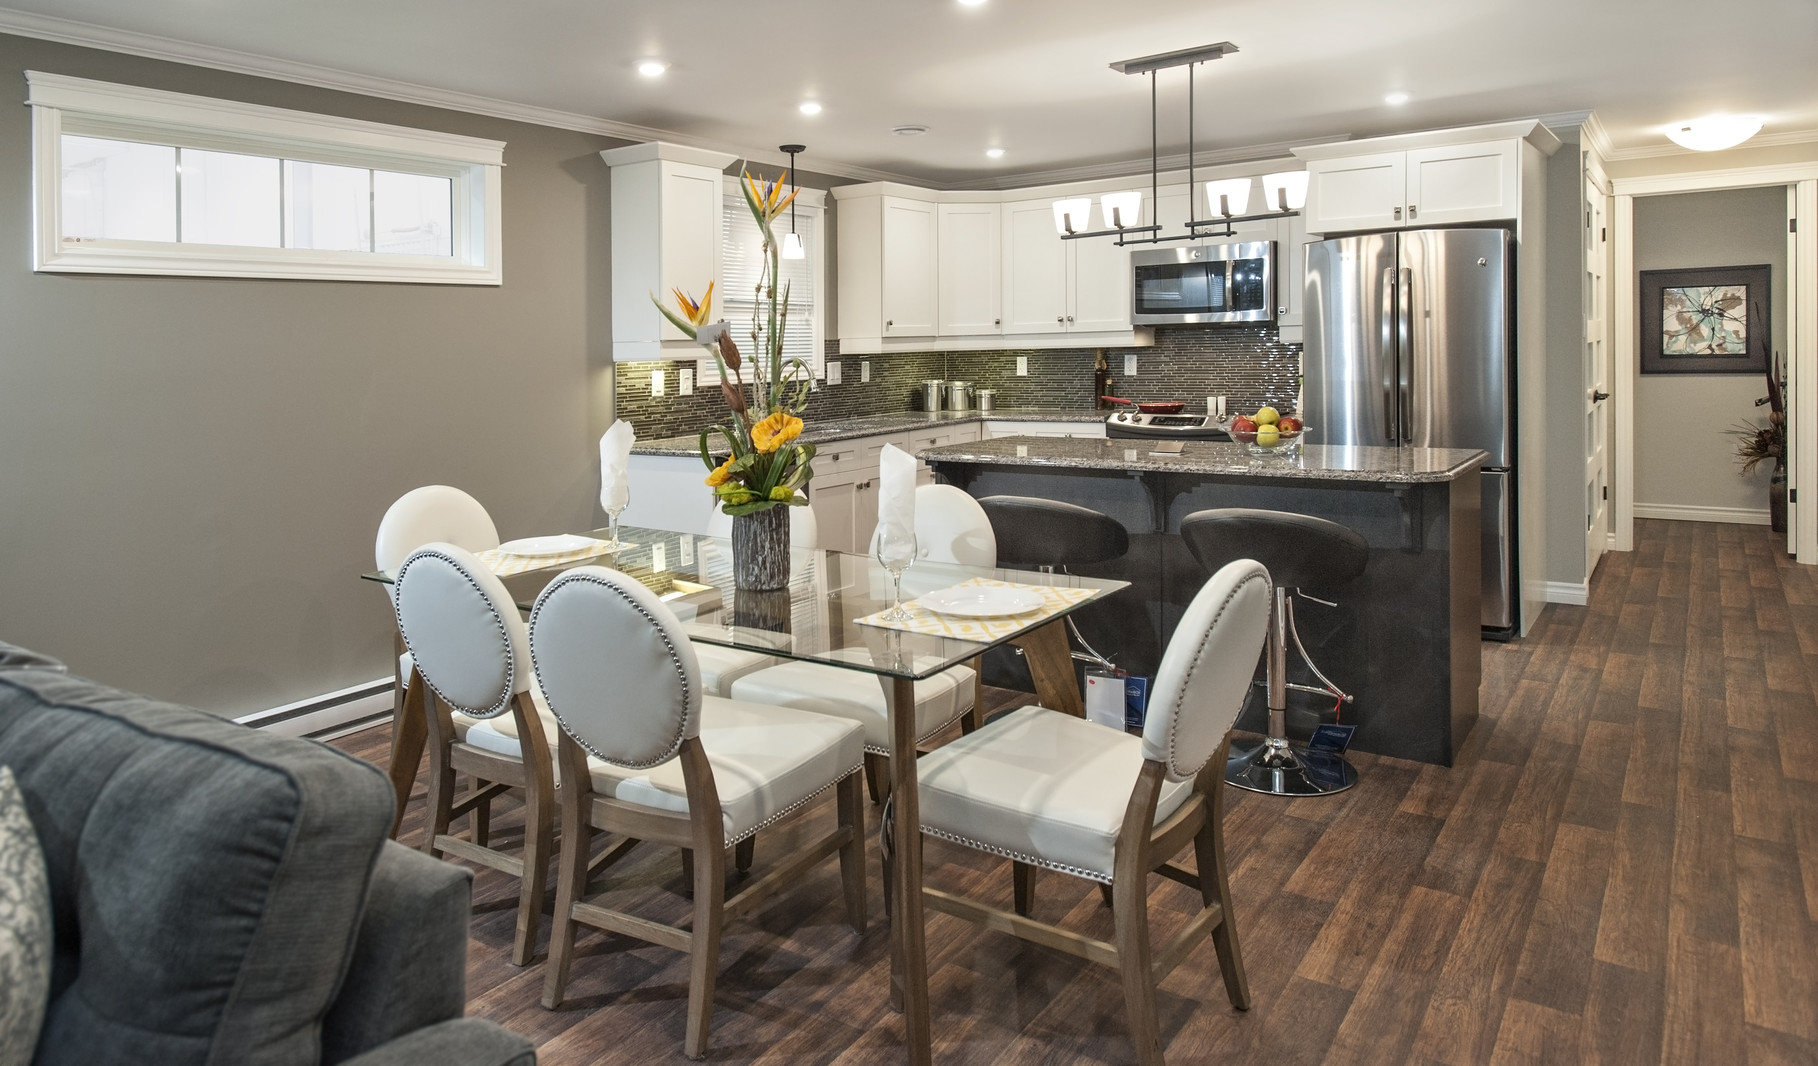 Talk with our New Home Specialists about your New Home